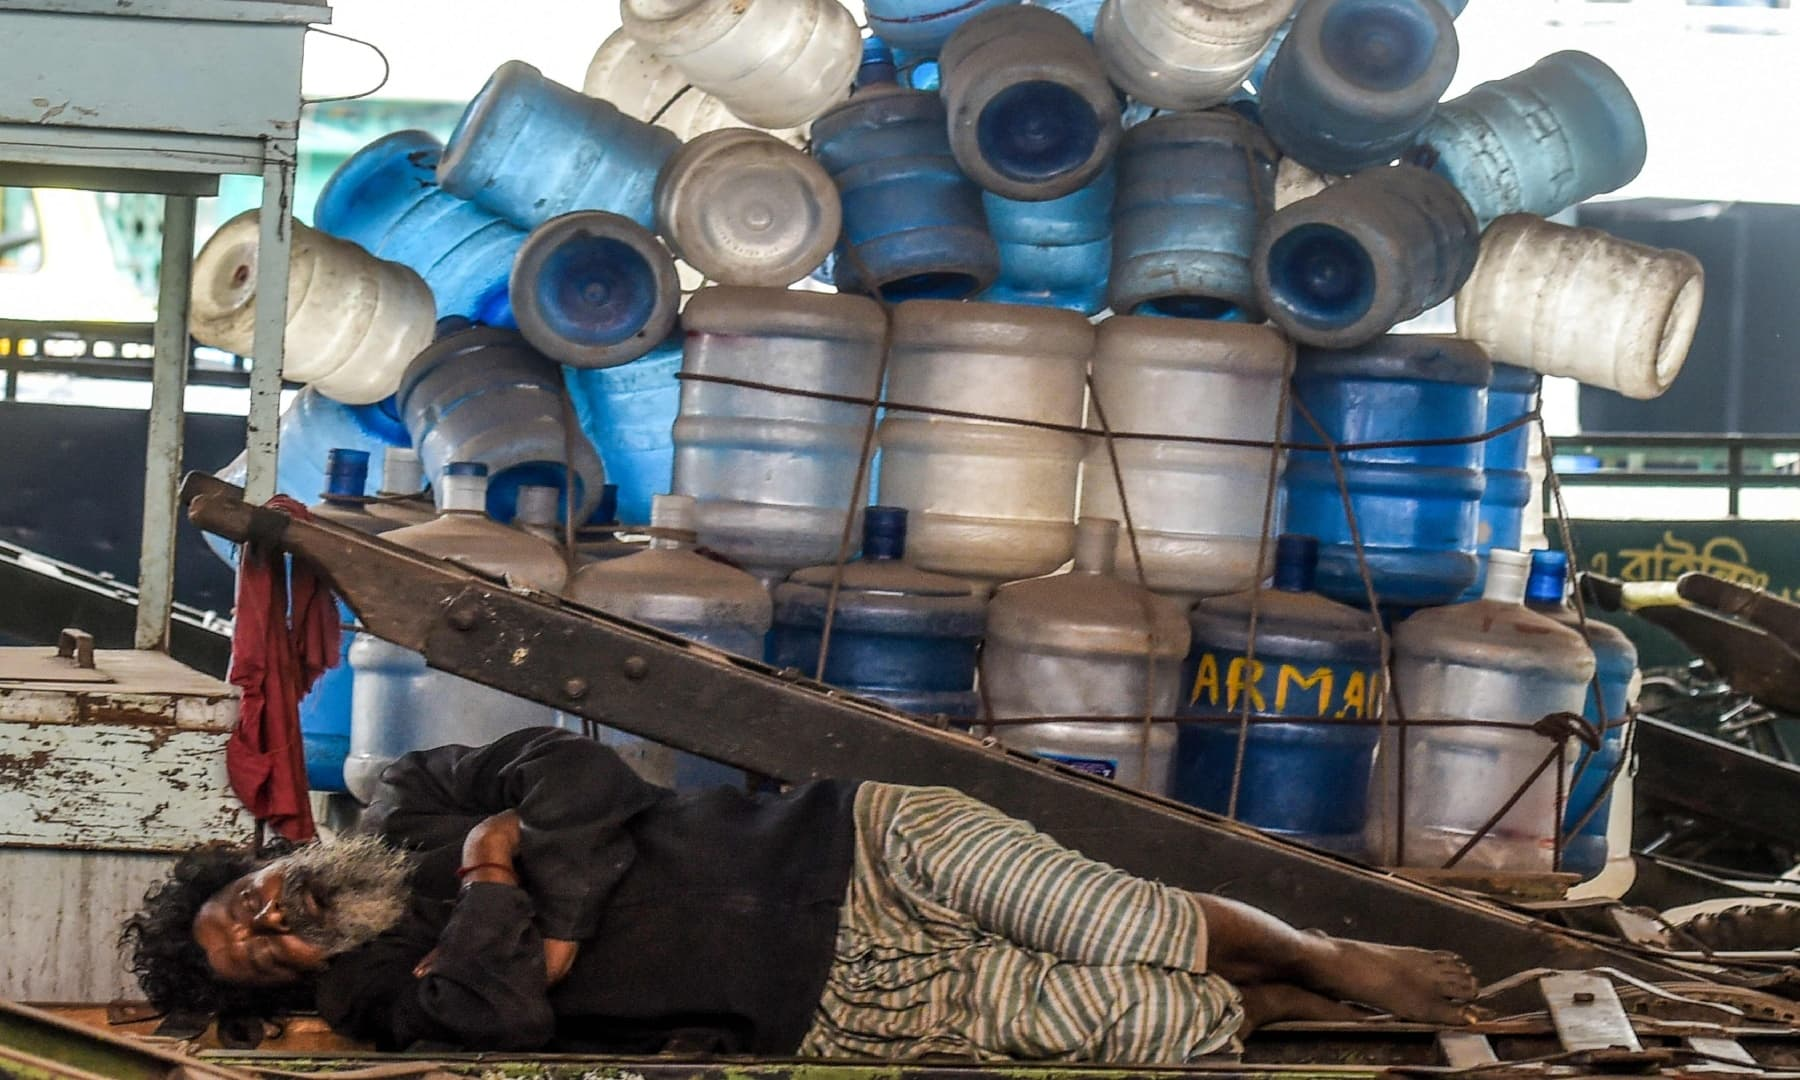 A labourer sleeps near empty water bottles on Labour Day in Dhaka, Bangladesh. — AFP